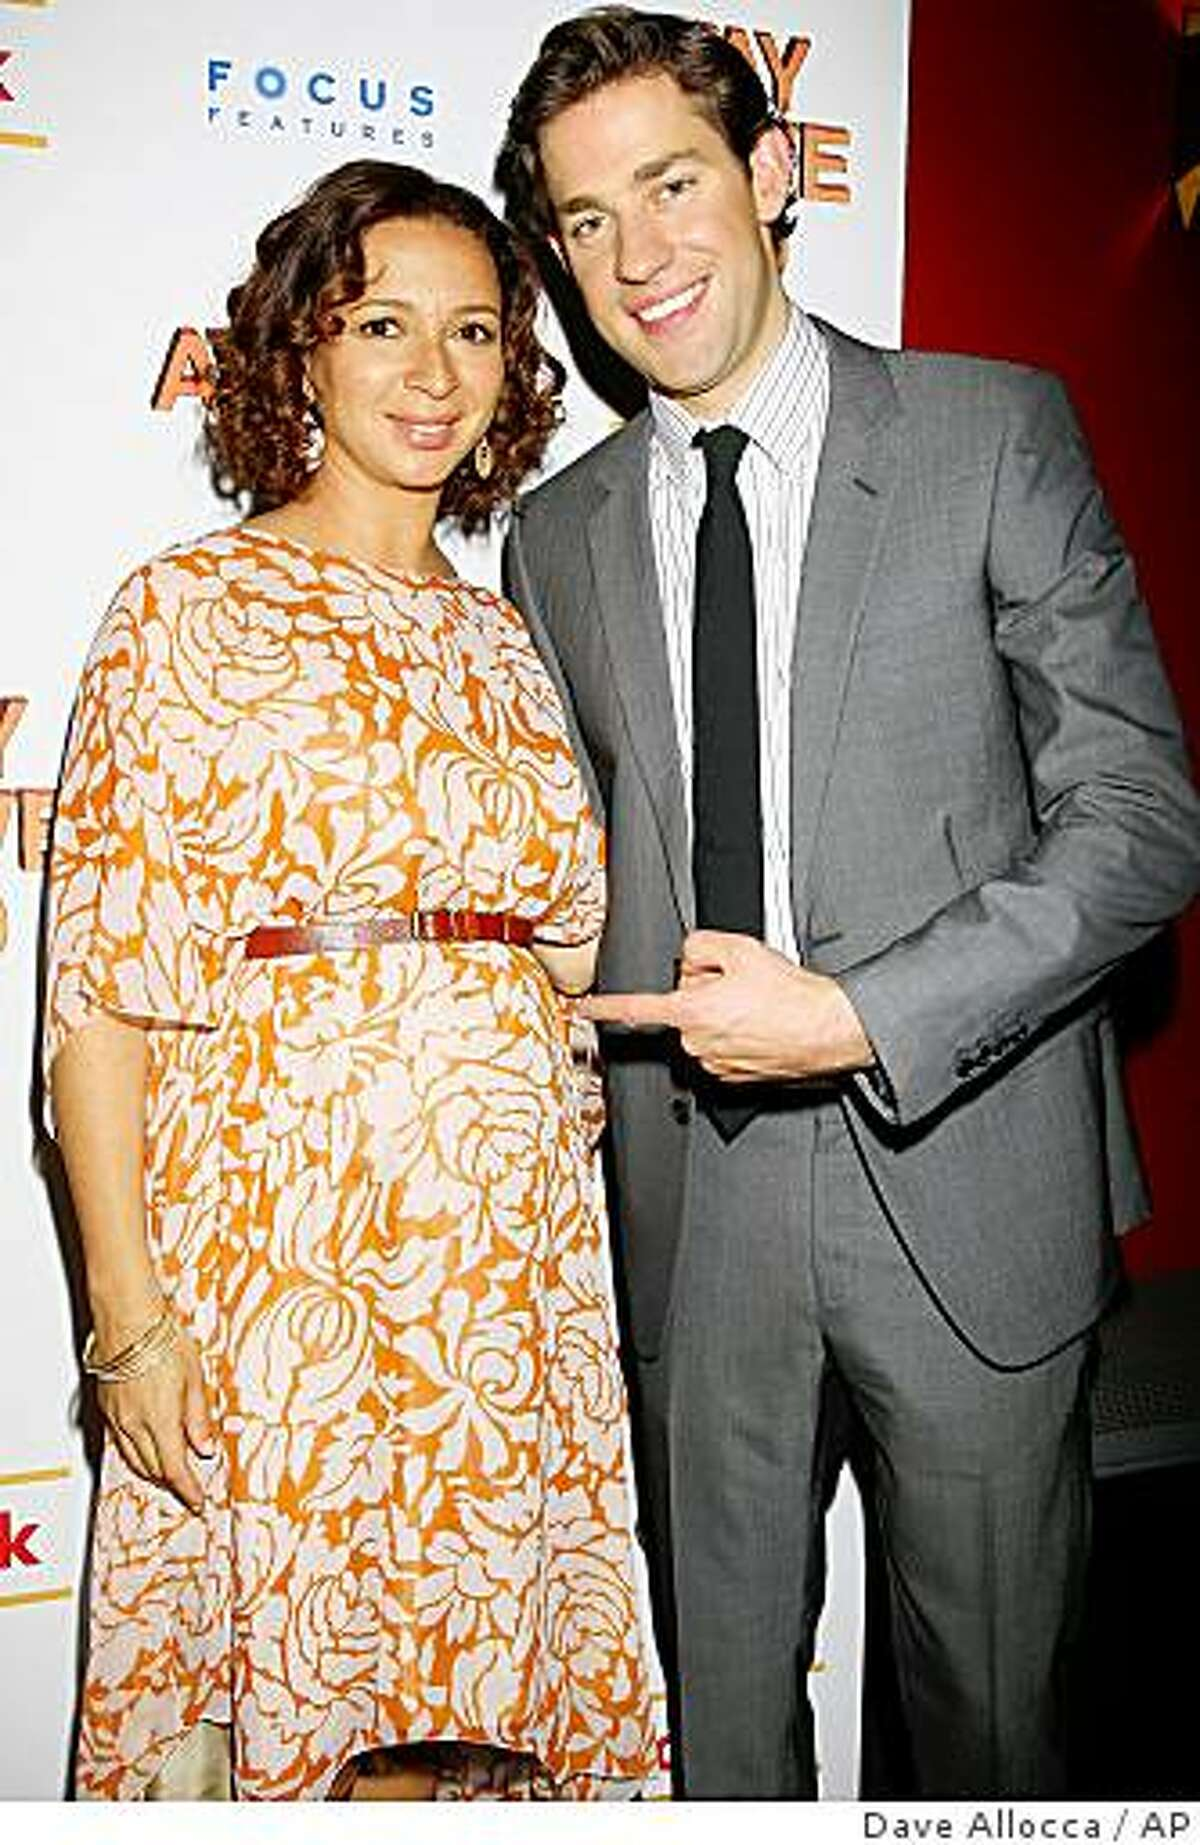 FILE - In this June 1, 2009 file photo provided by StarPix, actors John Krasinski and Maya Rudolph arrive at the the New York premiere of of their film